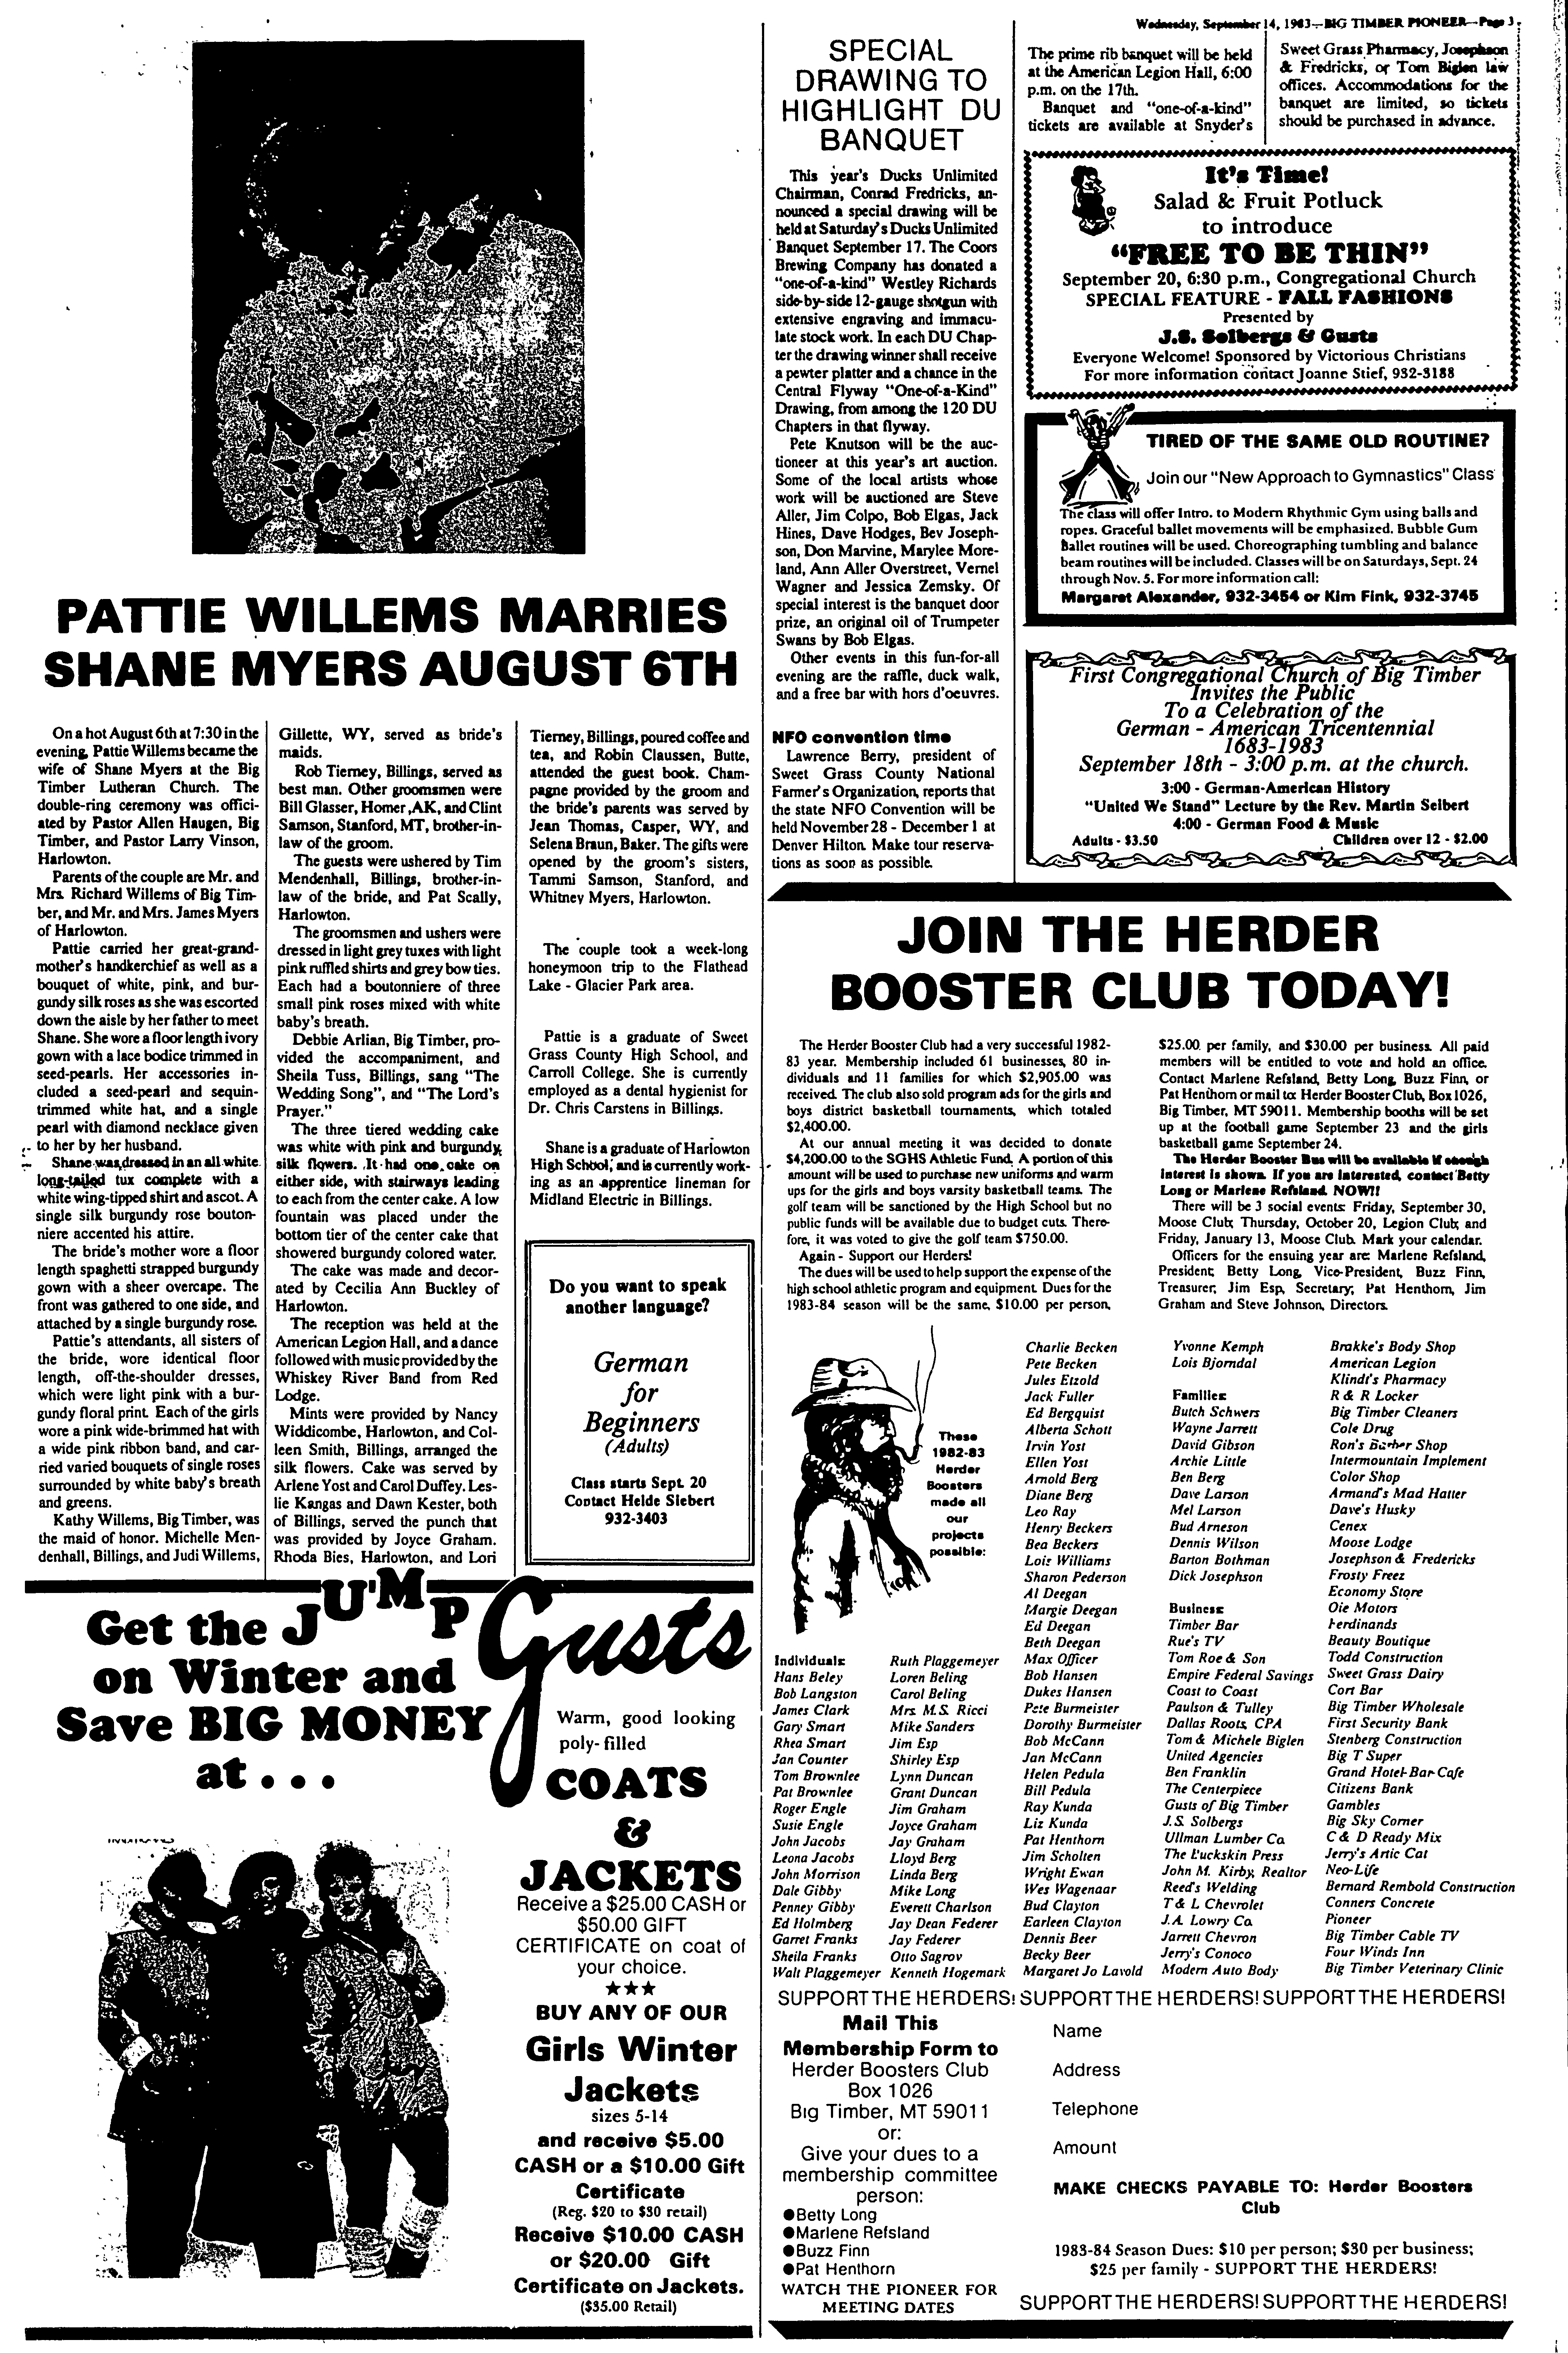 The Big Timber Pioneer, September 14, 1983, Page 3, Image 3